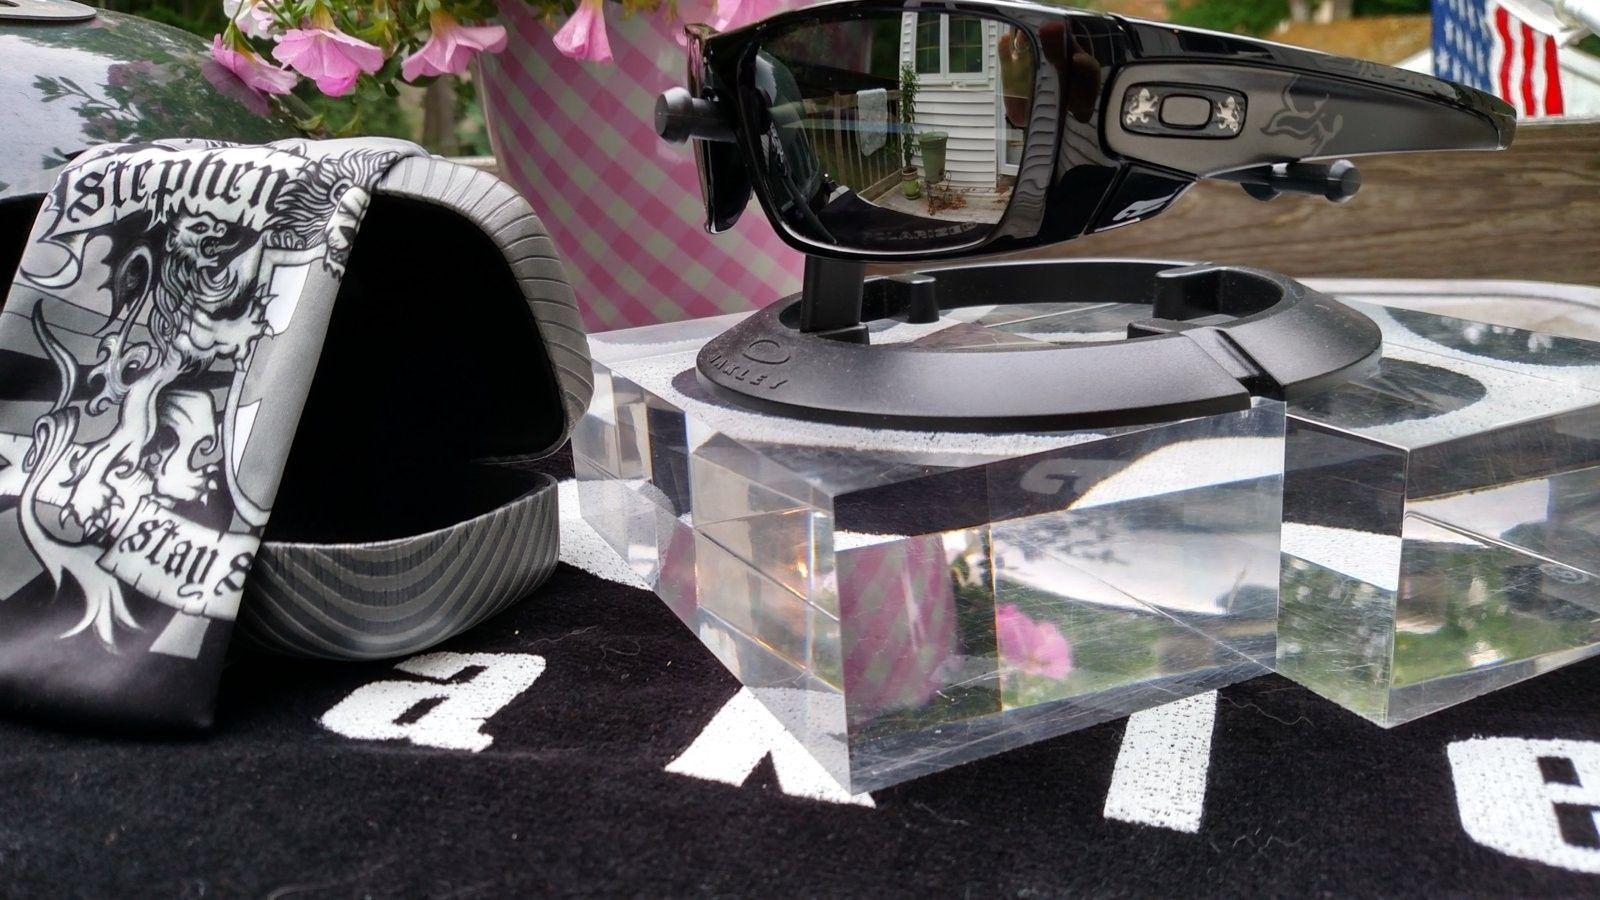 Stephen Murray Fuel Cell---New Condition w/case, Polarized - IMG_20160708_172303783_HDR (3).jpg